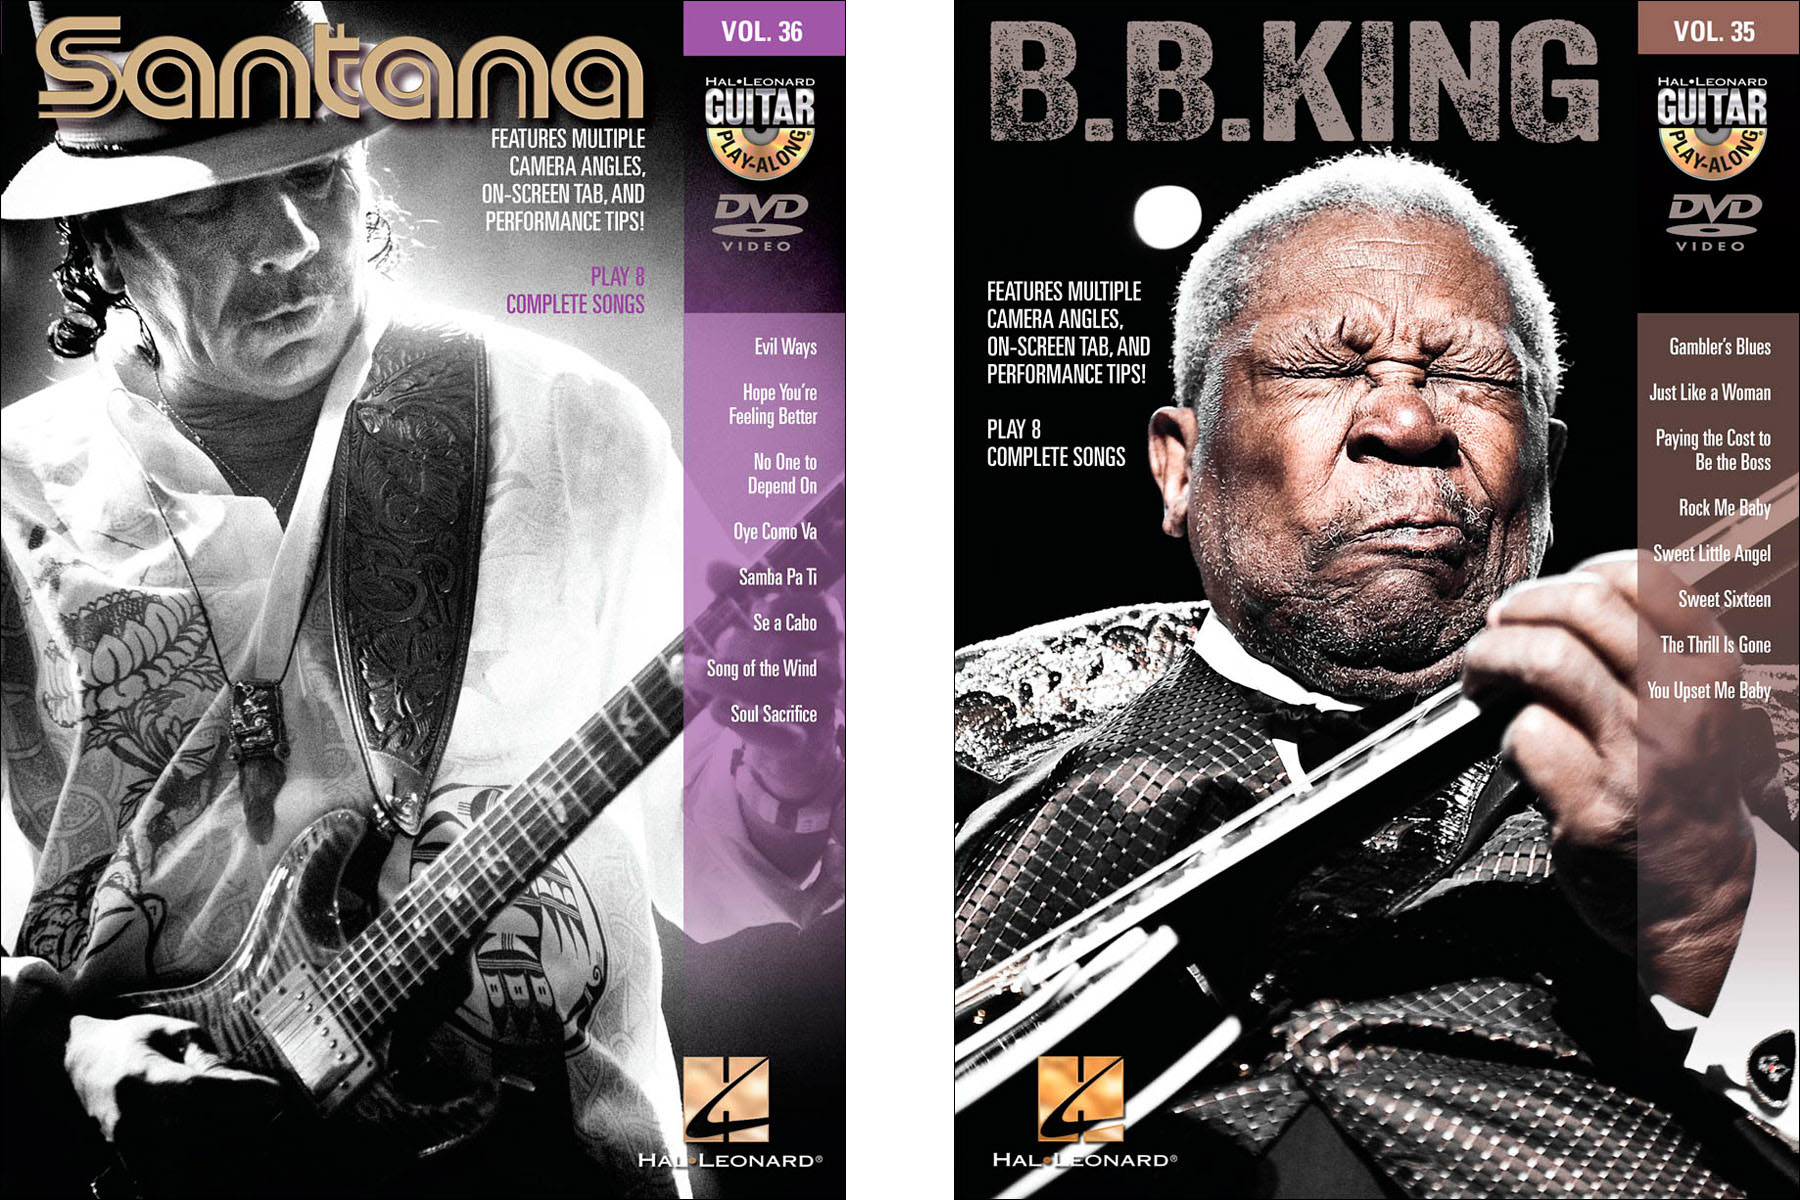 B.B. King live in Oakland